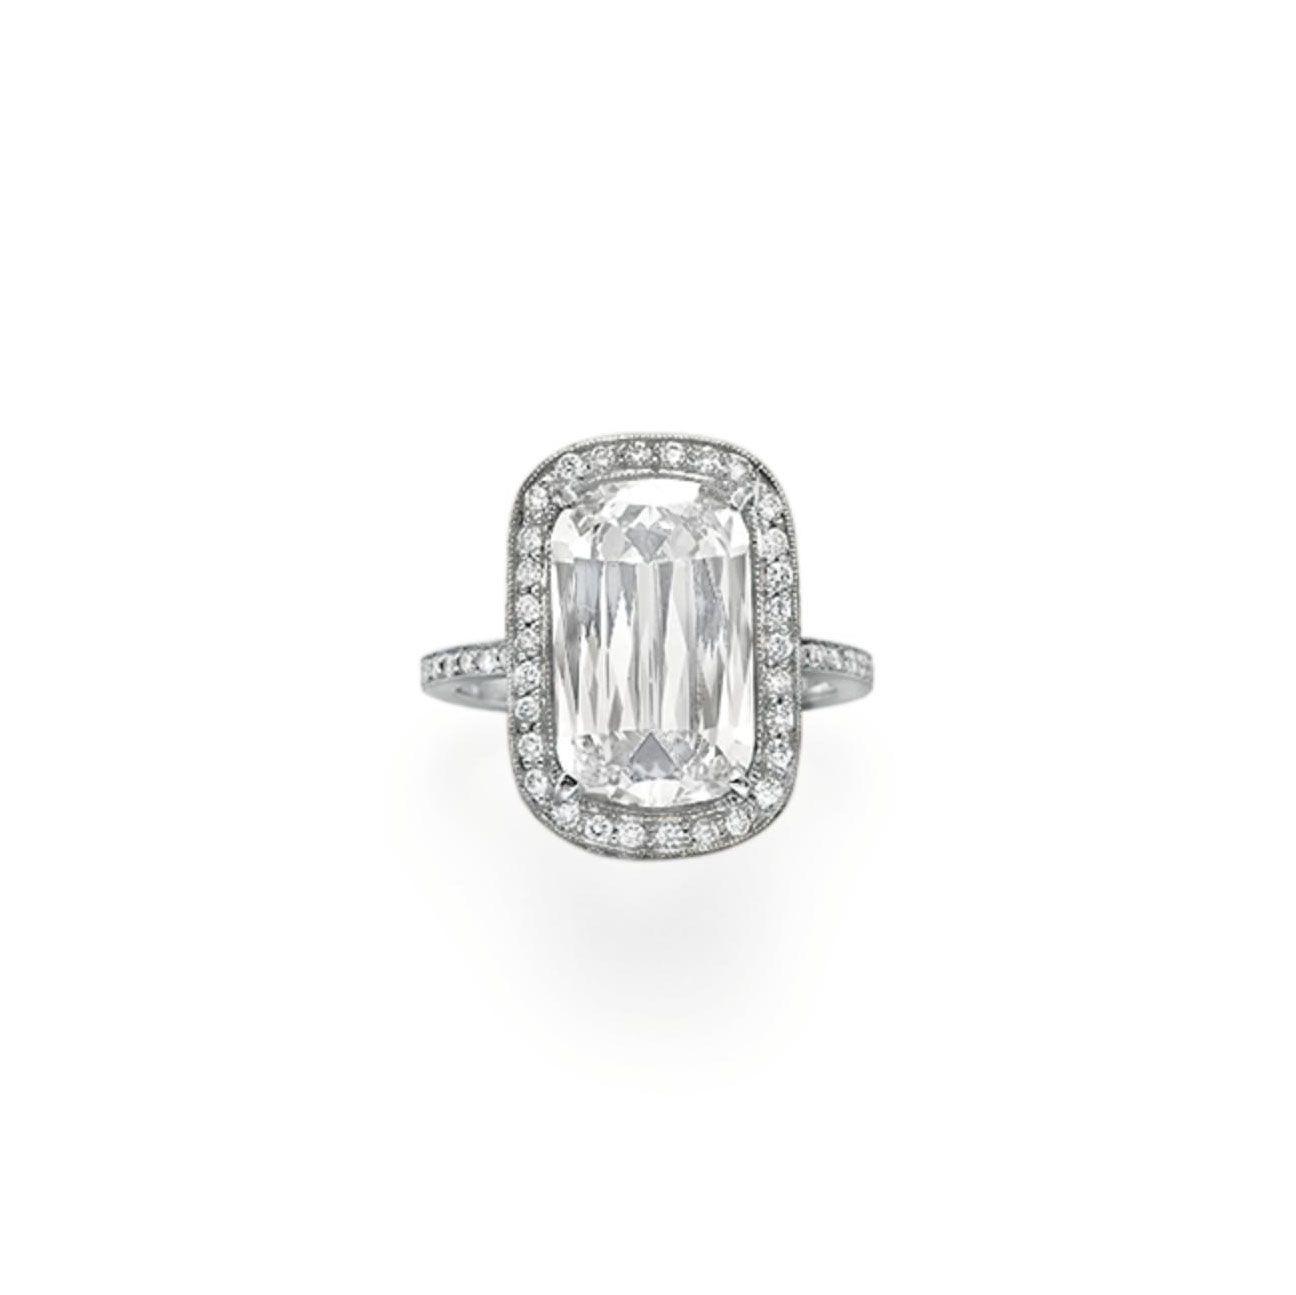 A DIAMOND RING, BY WILLIAM GOLDBERG